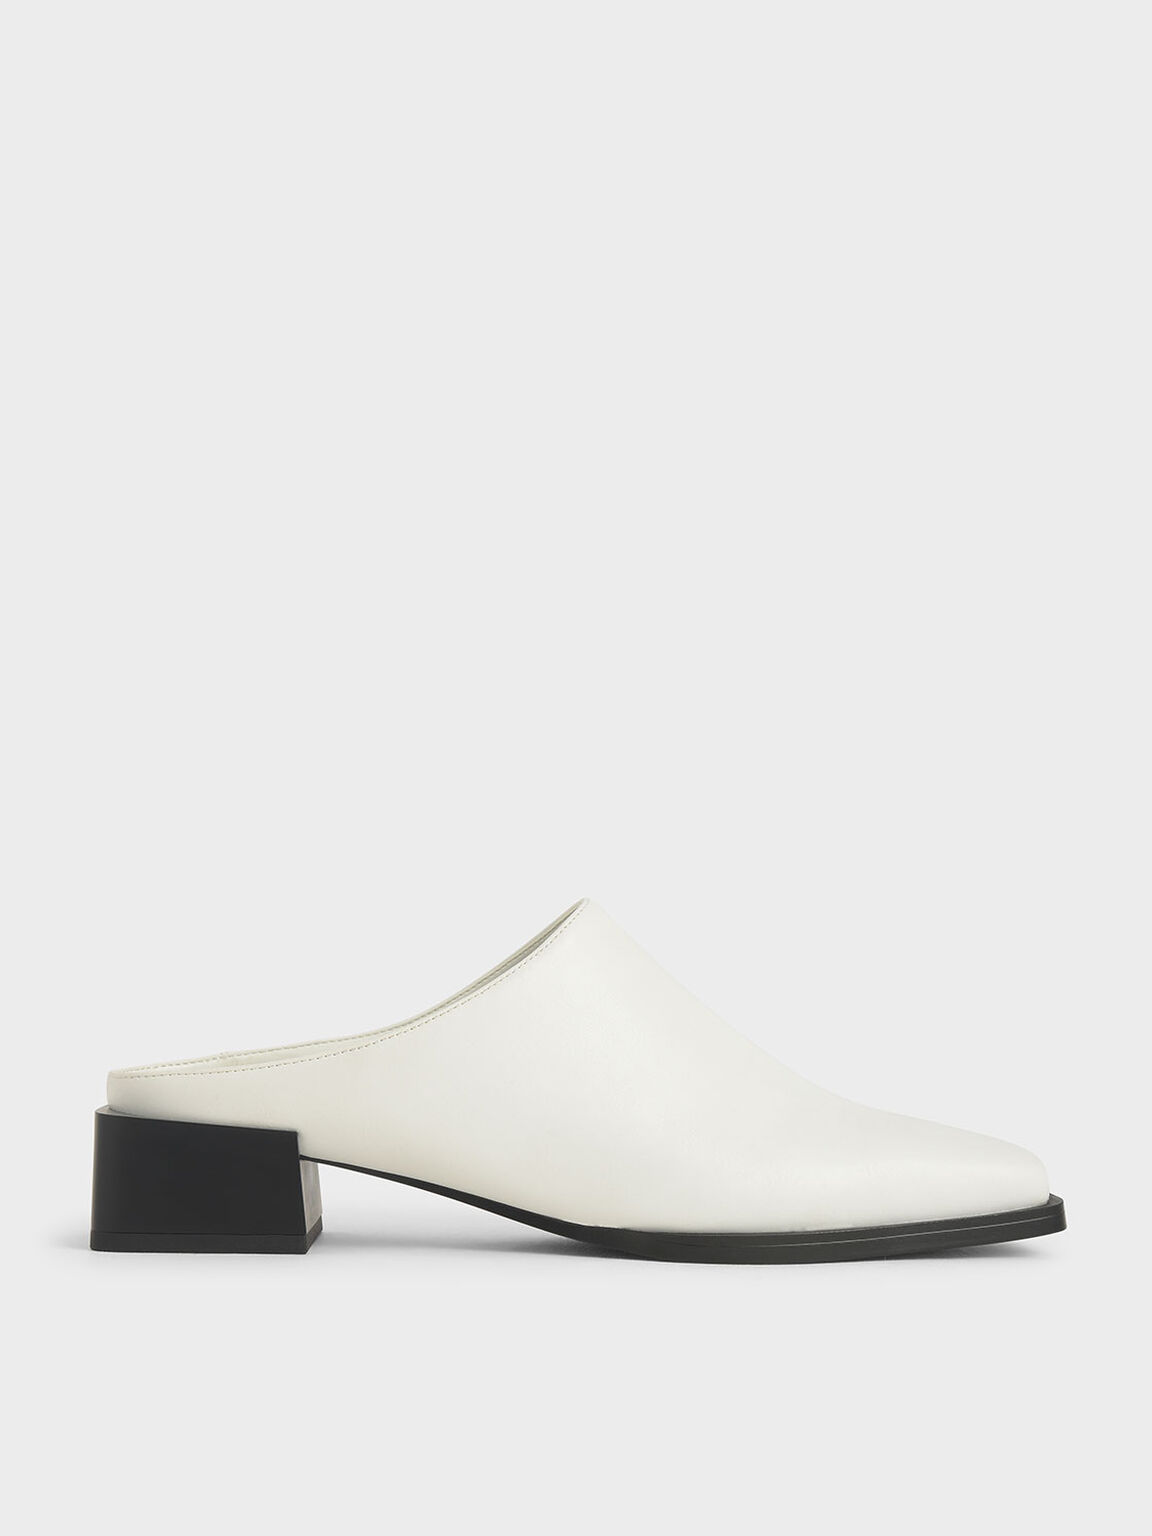 Square Toe Mules, White, hi-res